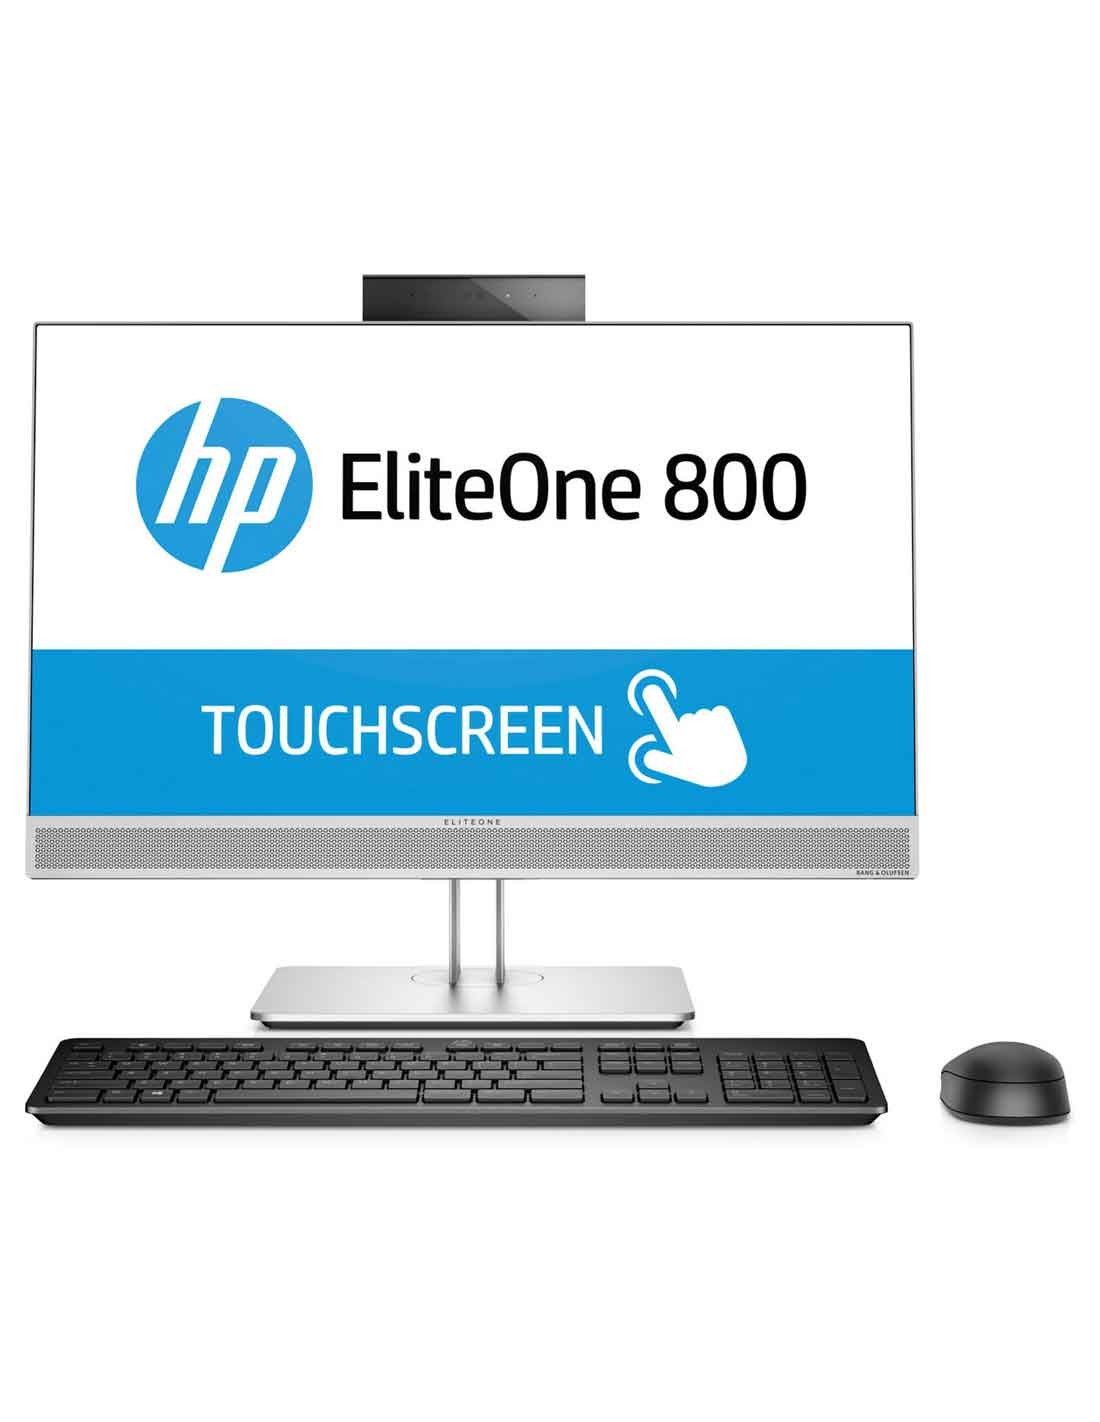 HP EliteOne 800 G3 Intel Core i7 All in One images